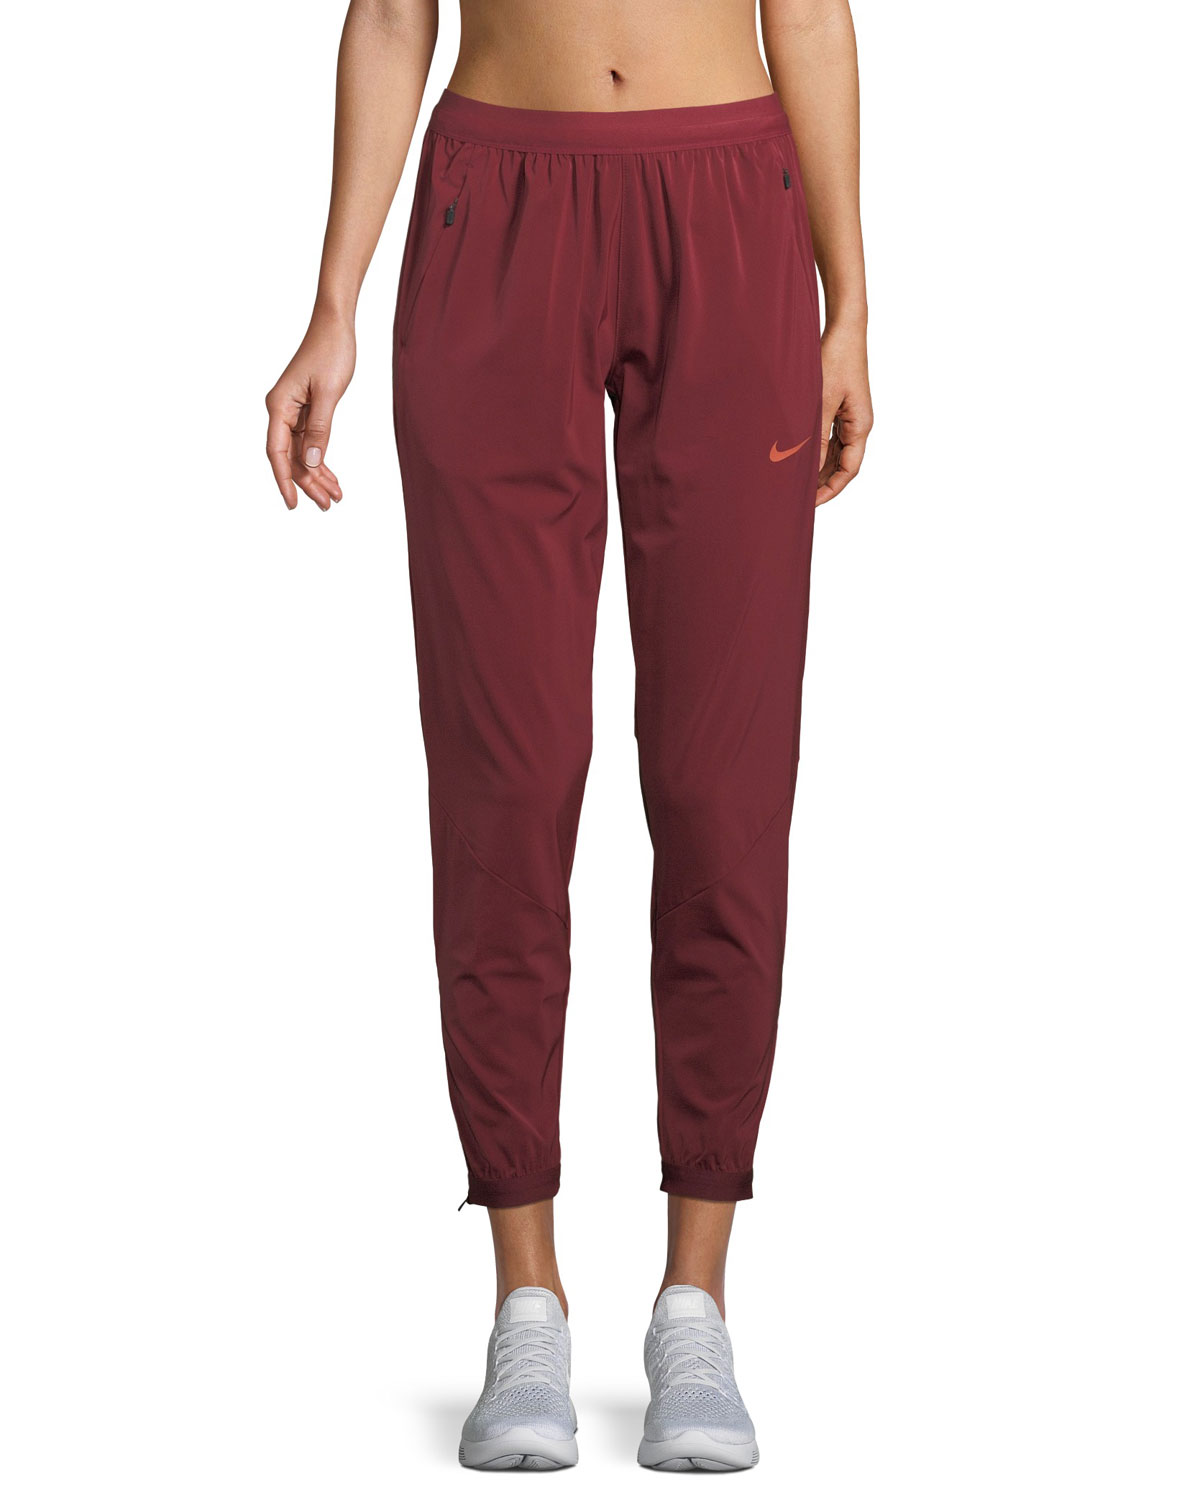 0925b8474648 Nike Stadium Dri-FIT Running Pants